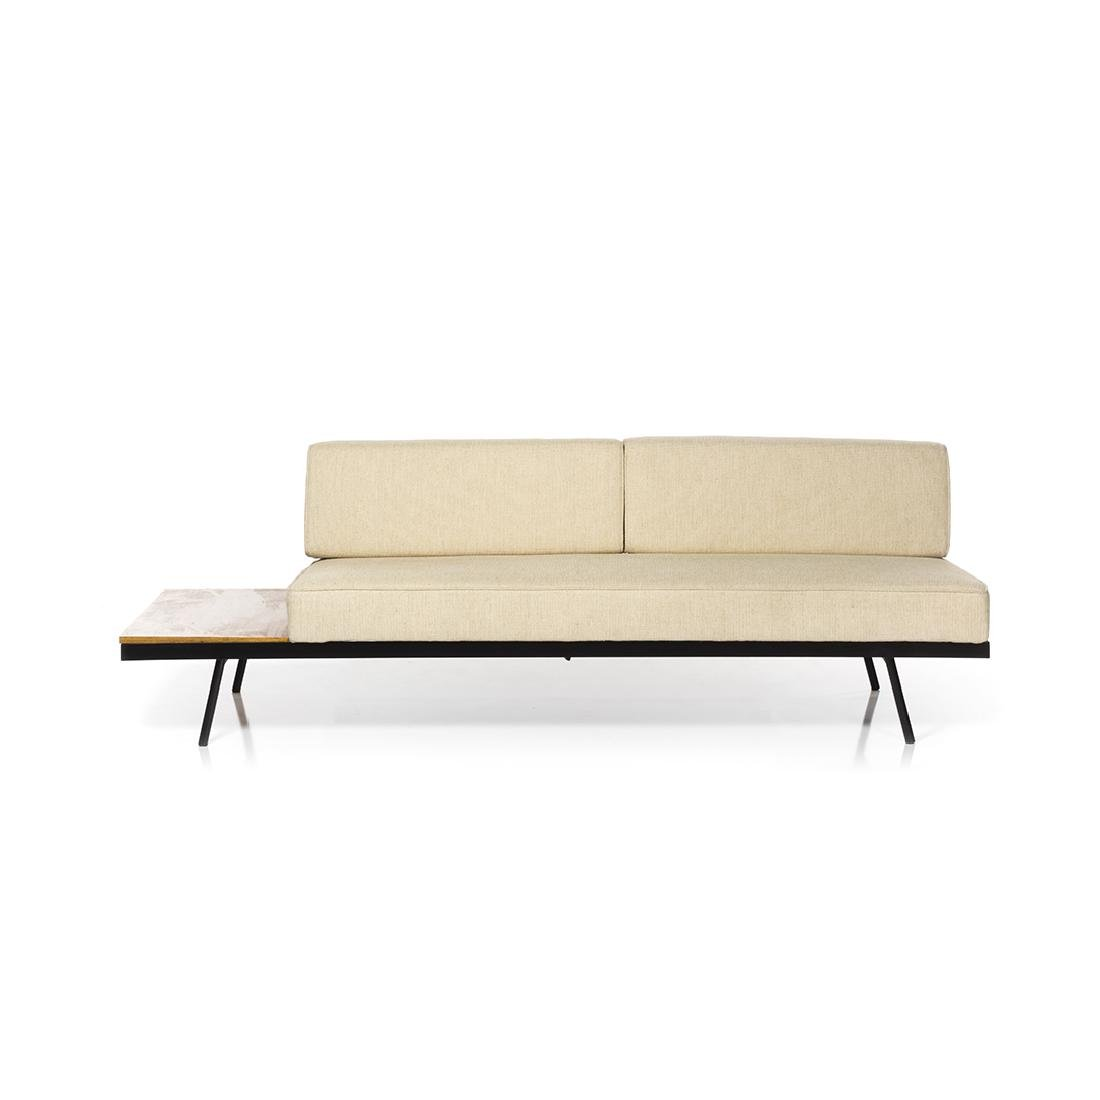 Bates and Gregory Sofa - 2